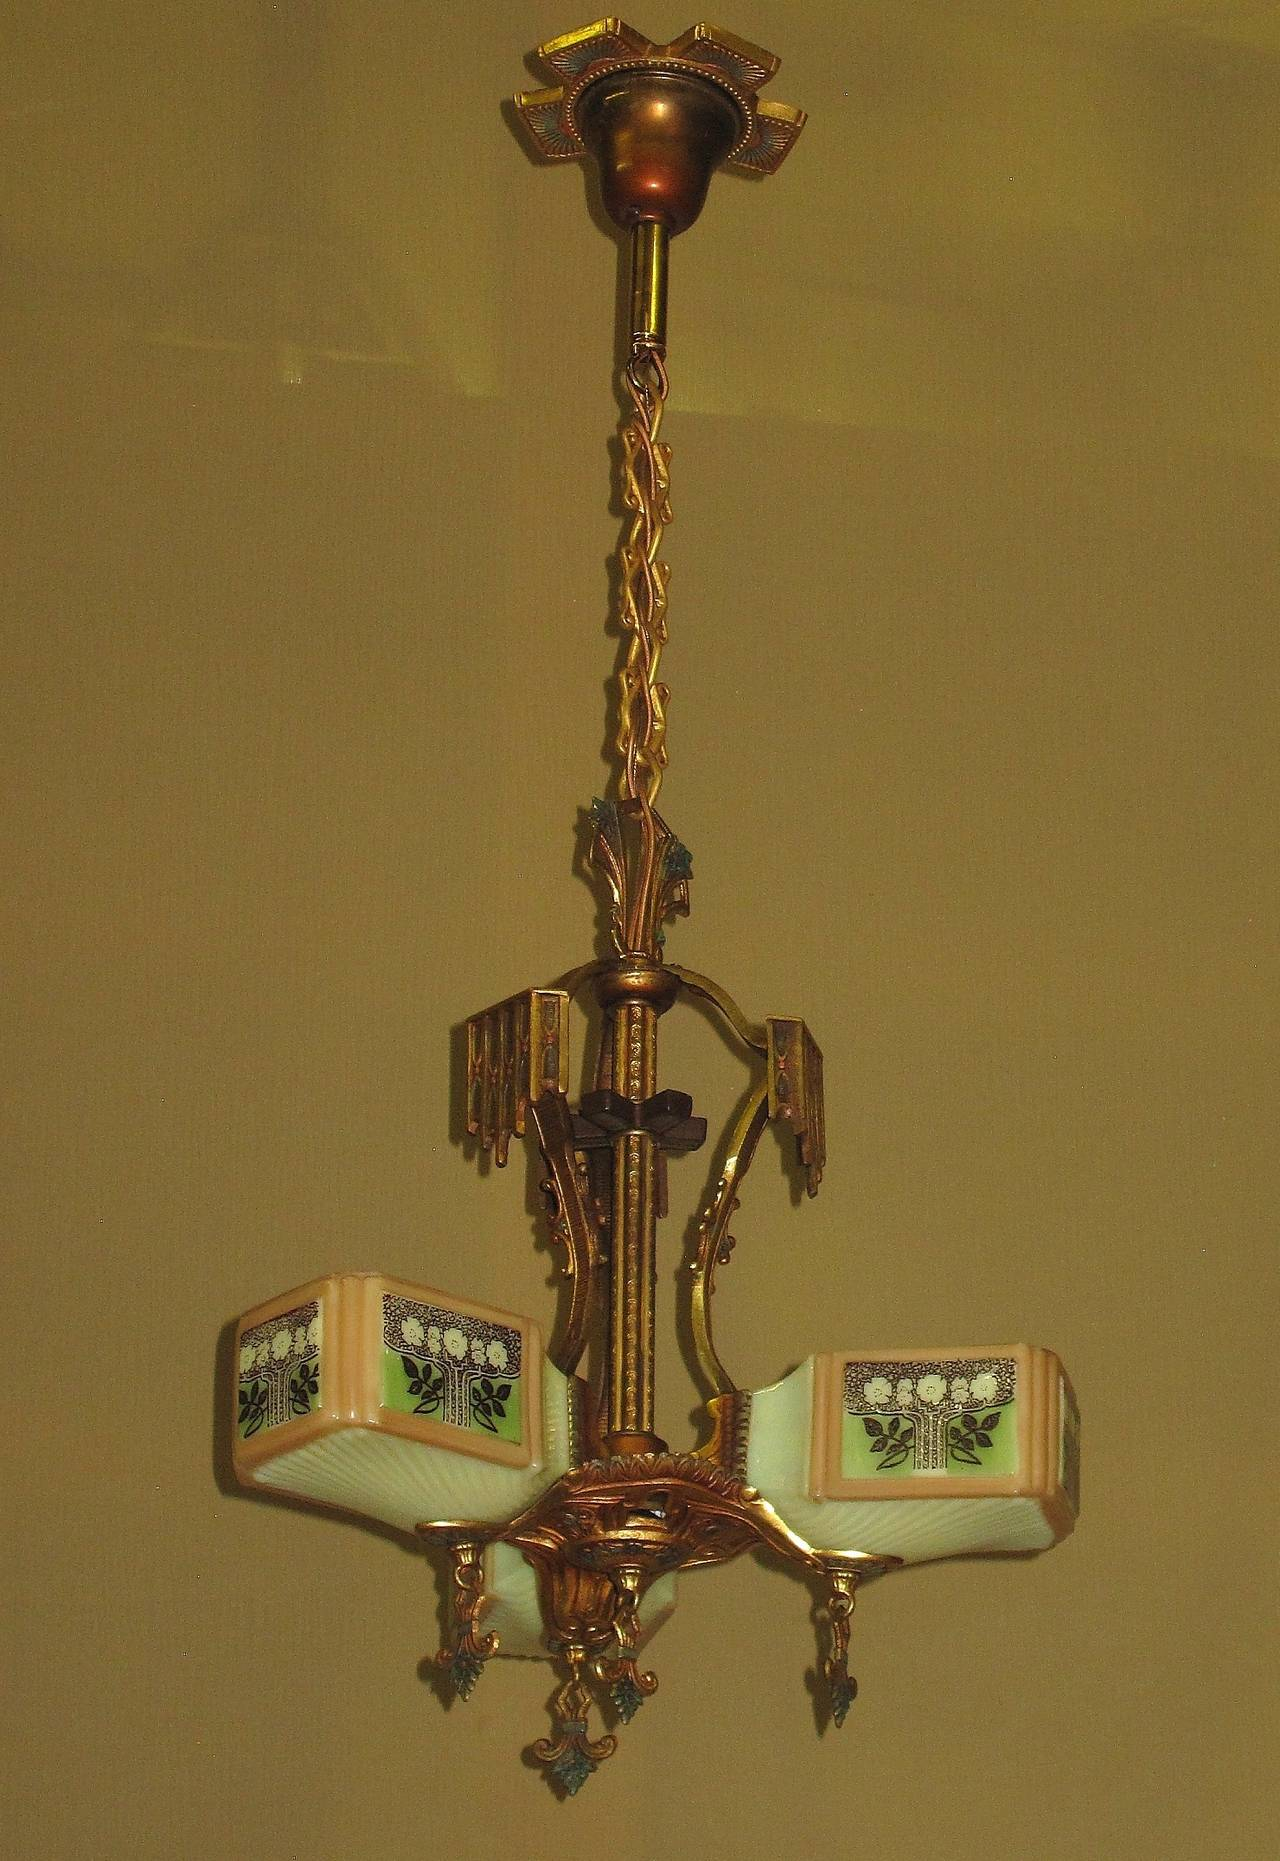 Gill Three Light Ceiling Fixture With Original Colors And